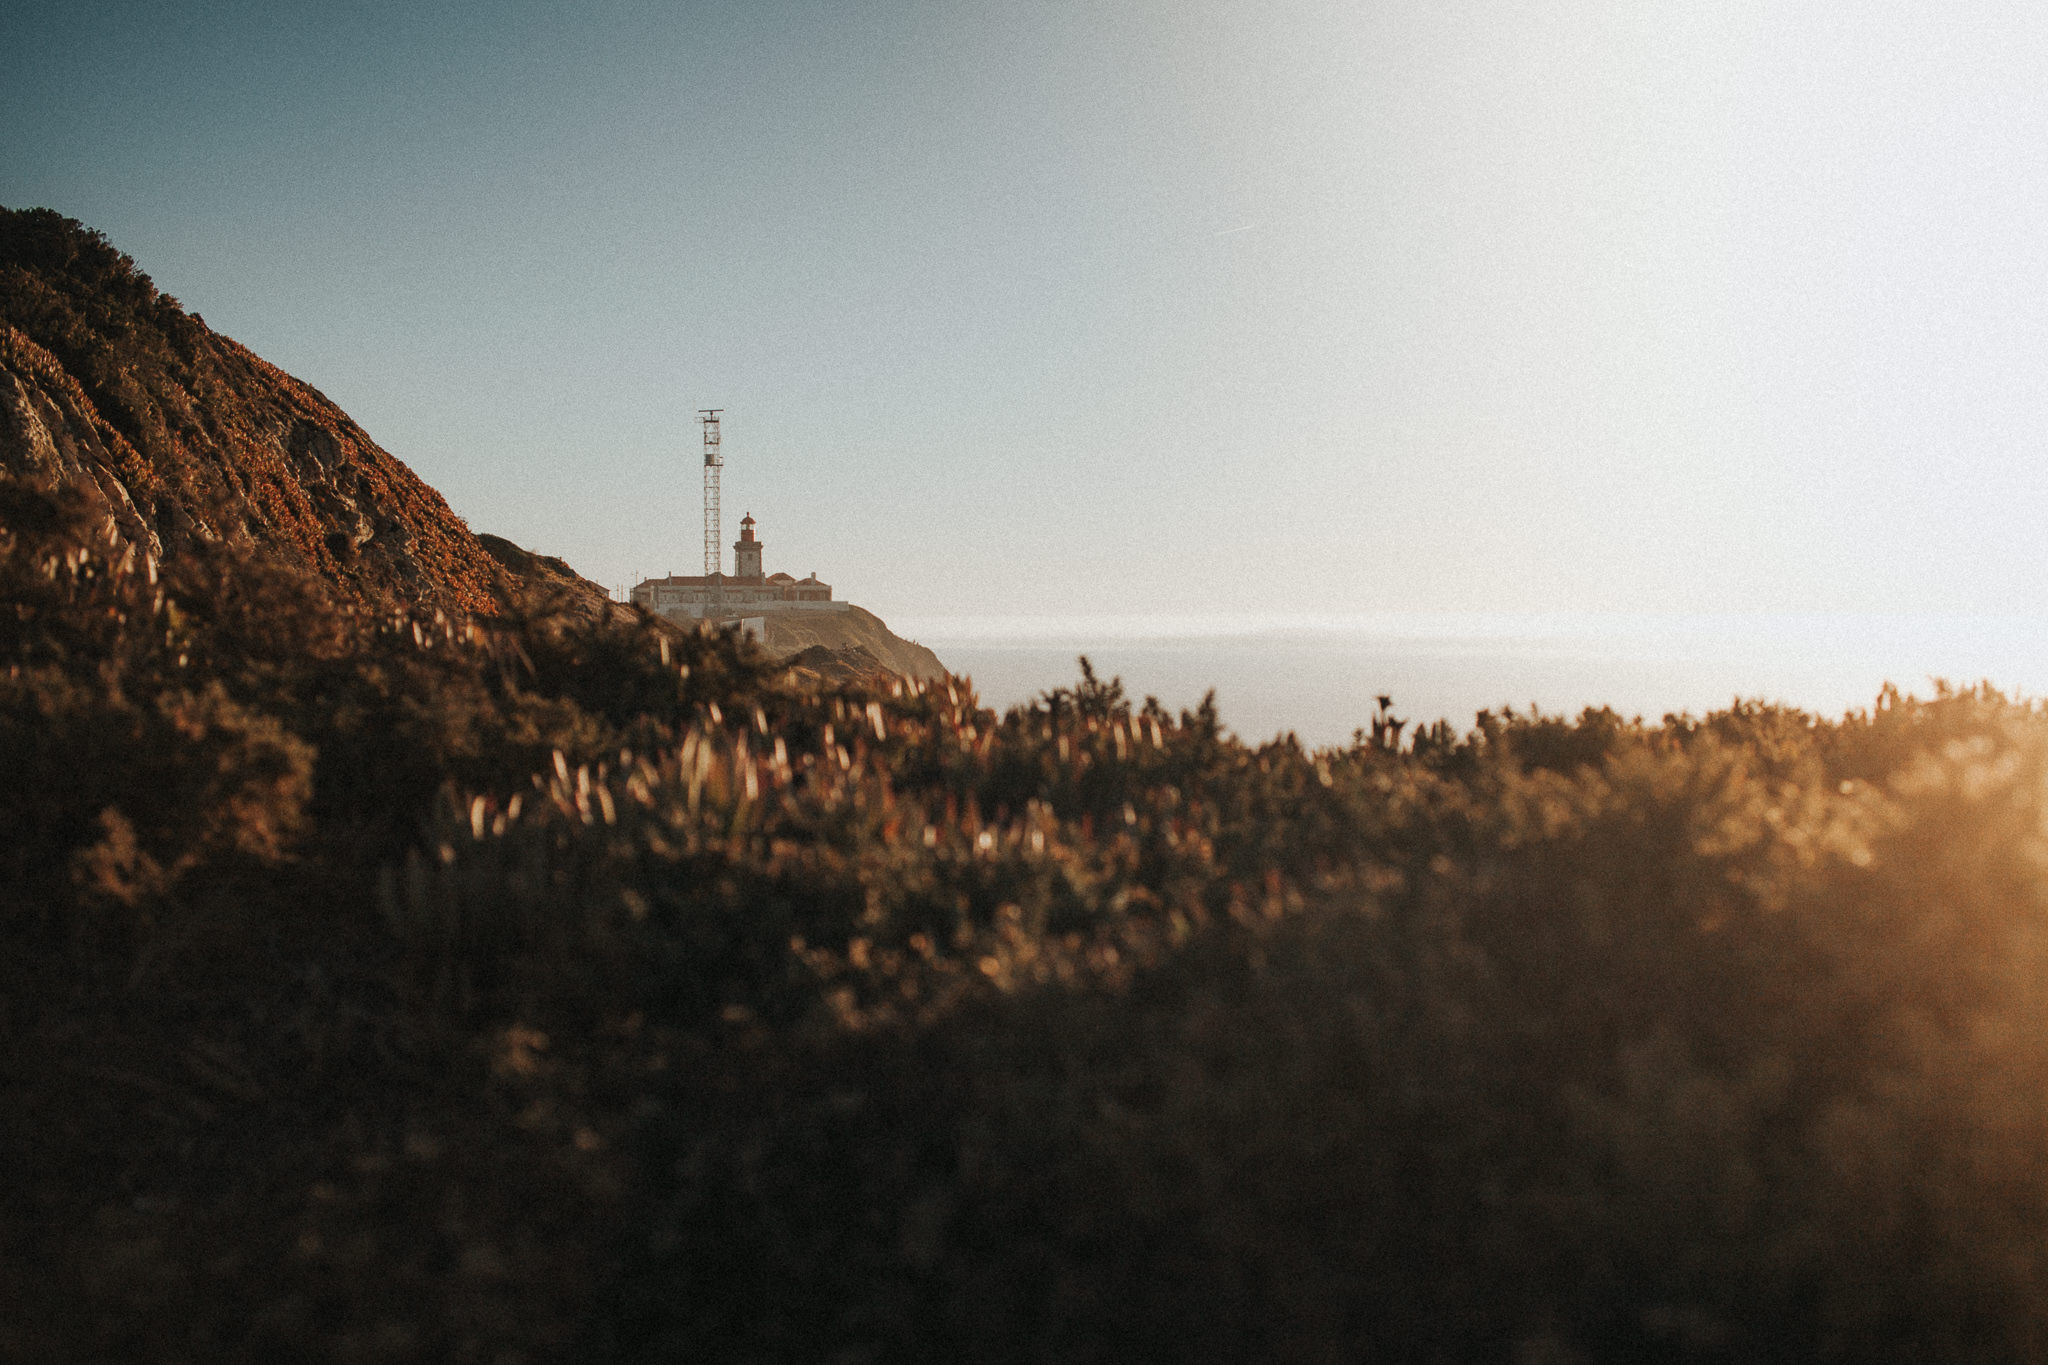 Lighthouse of Cabo da Roca during the sunset